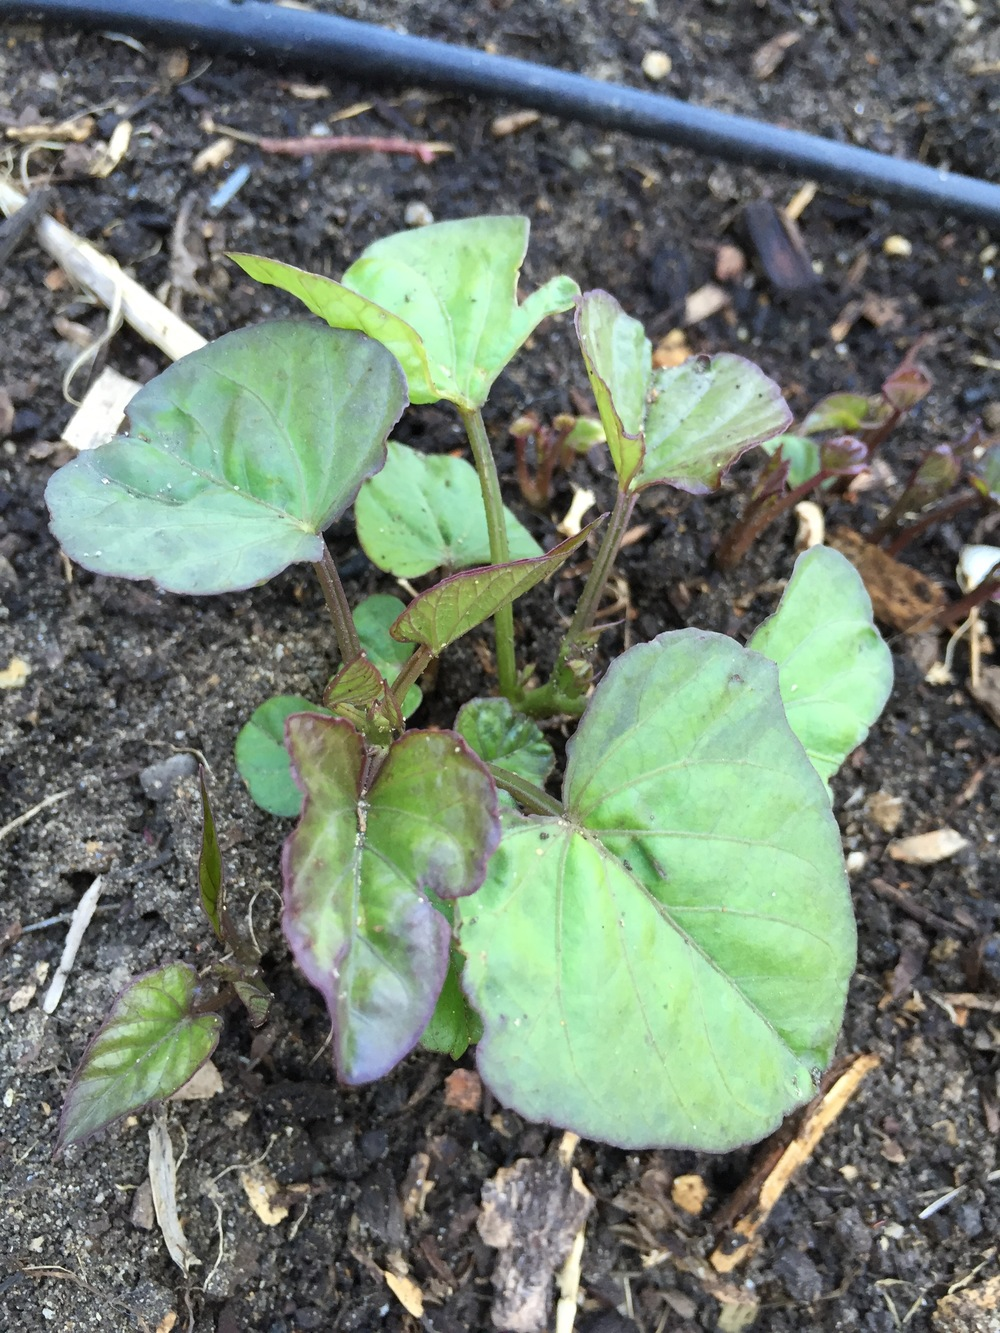 Sweet potato vines coming up in the winter squash bed, where we had planted them last year. Now I don't have to worry about making new slips. I forgot that these can be perennial, if you want them to be (or if you leave a couple of roots in the ground by accident, ahem).